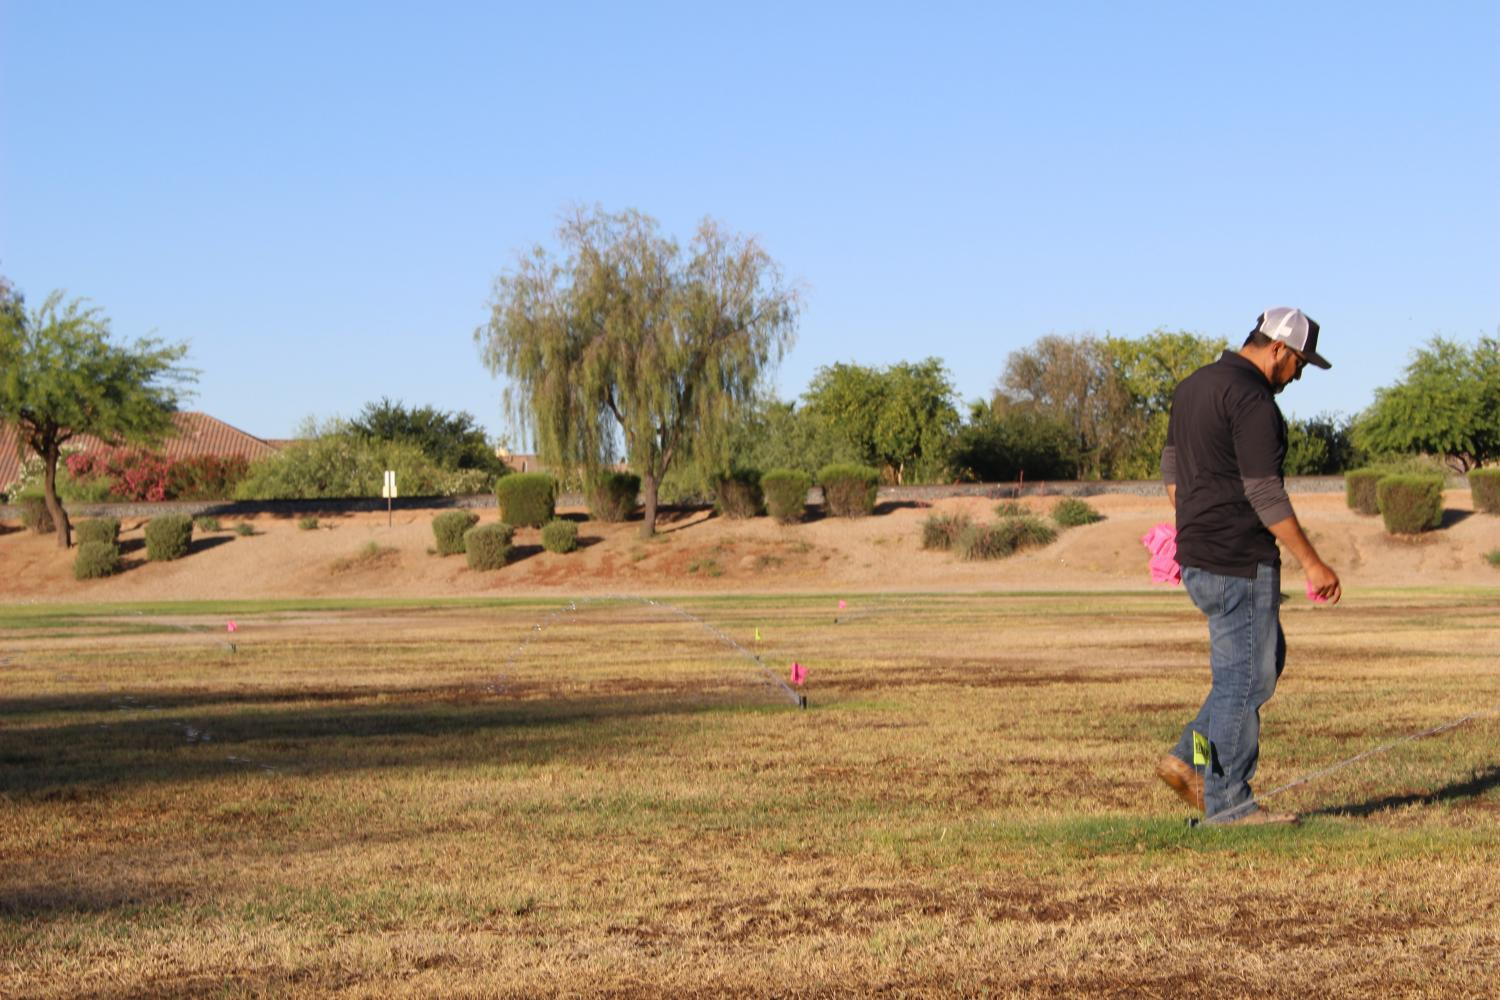 Jose Alvarez marks the sprinkler heads he has to change in order to test a new irrigation regime.